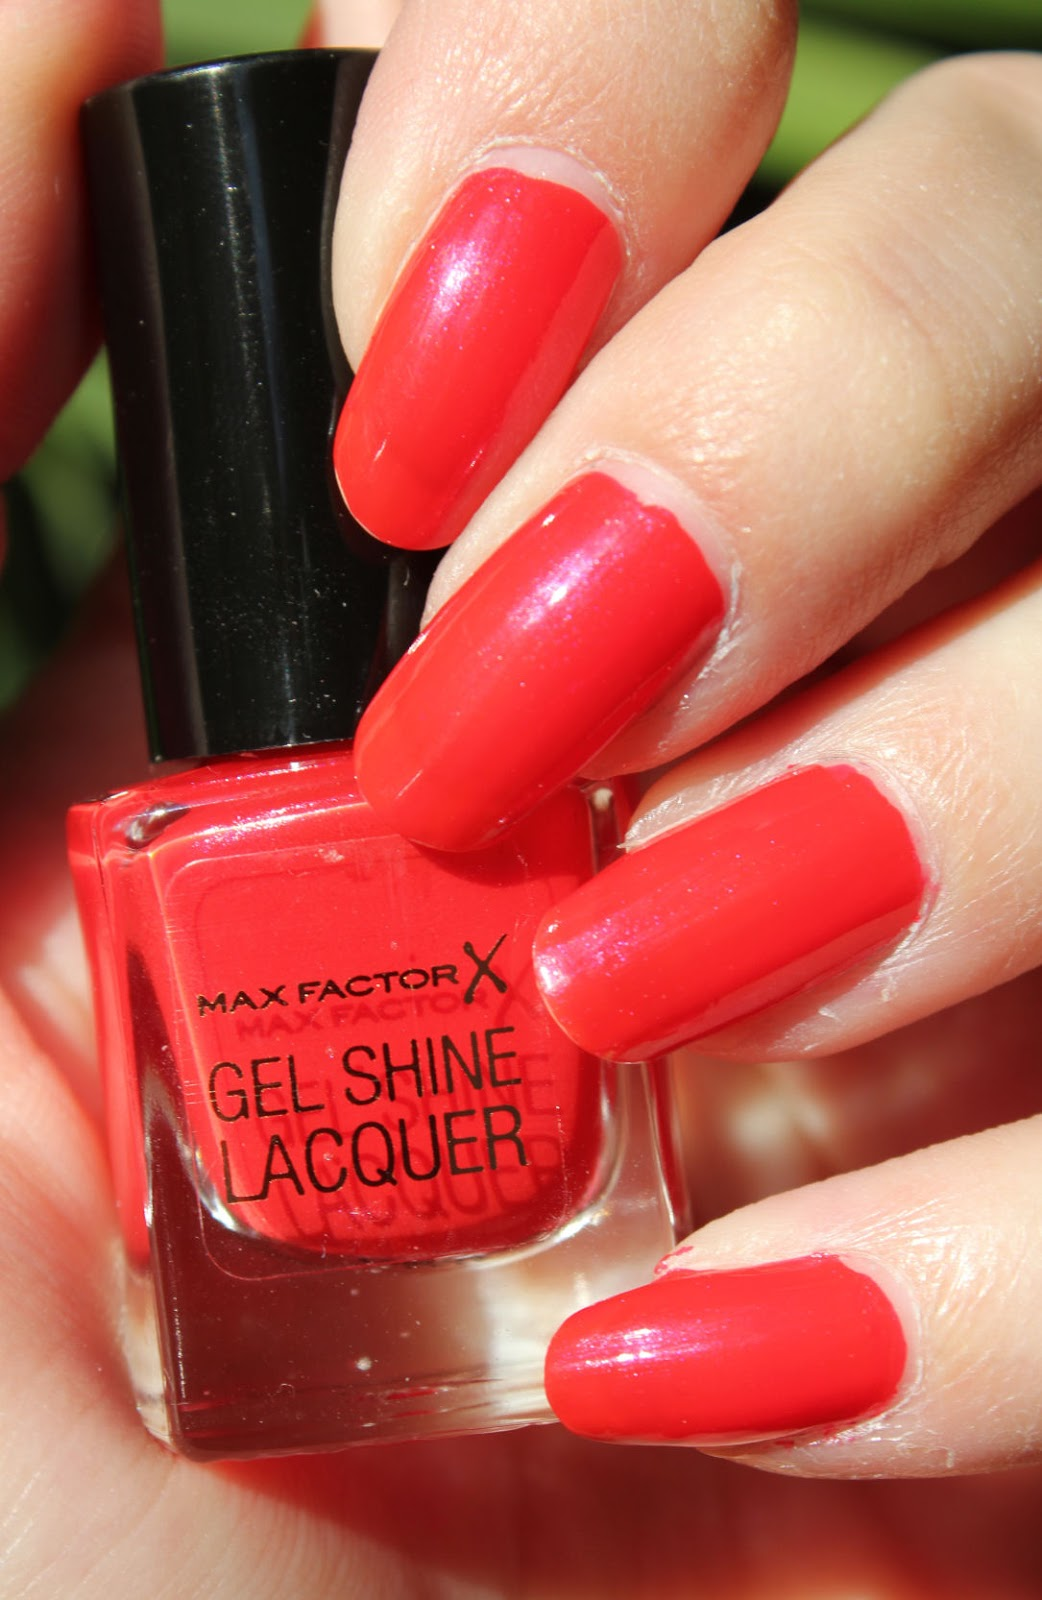 http://lacquediction.blogspot.de/2014/10/max-factor-gel-shine-lacquer-25-patent.html